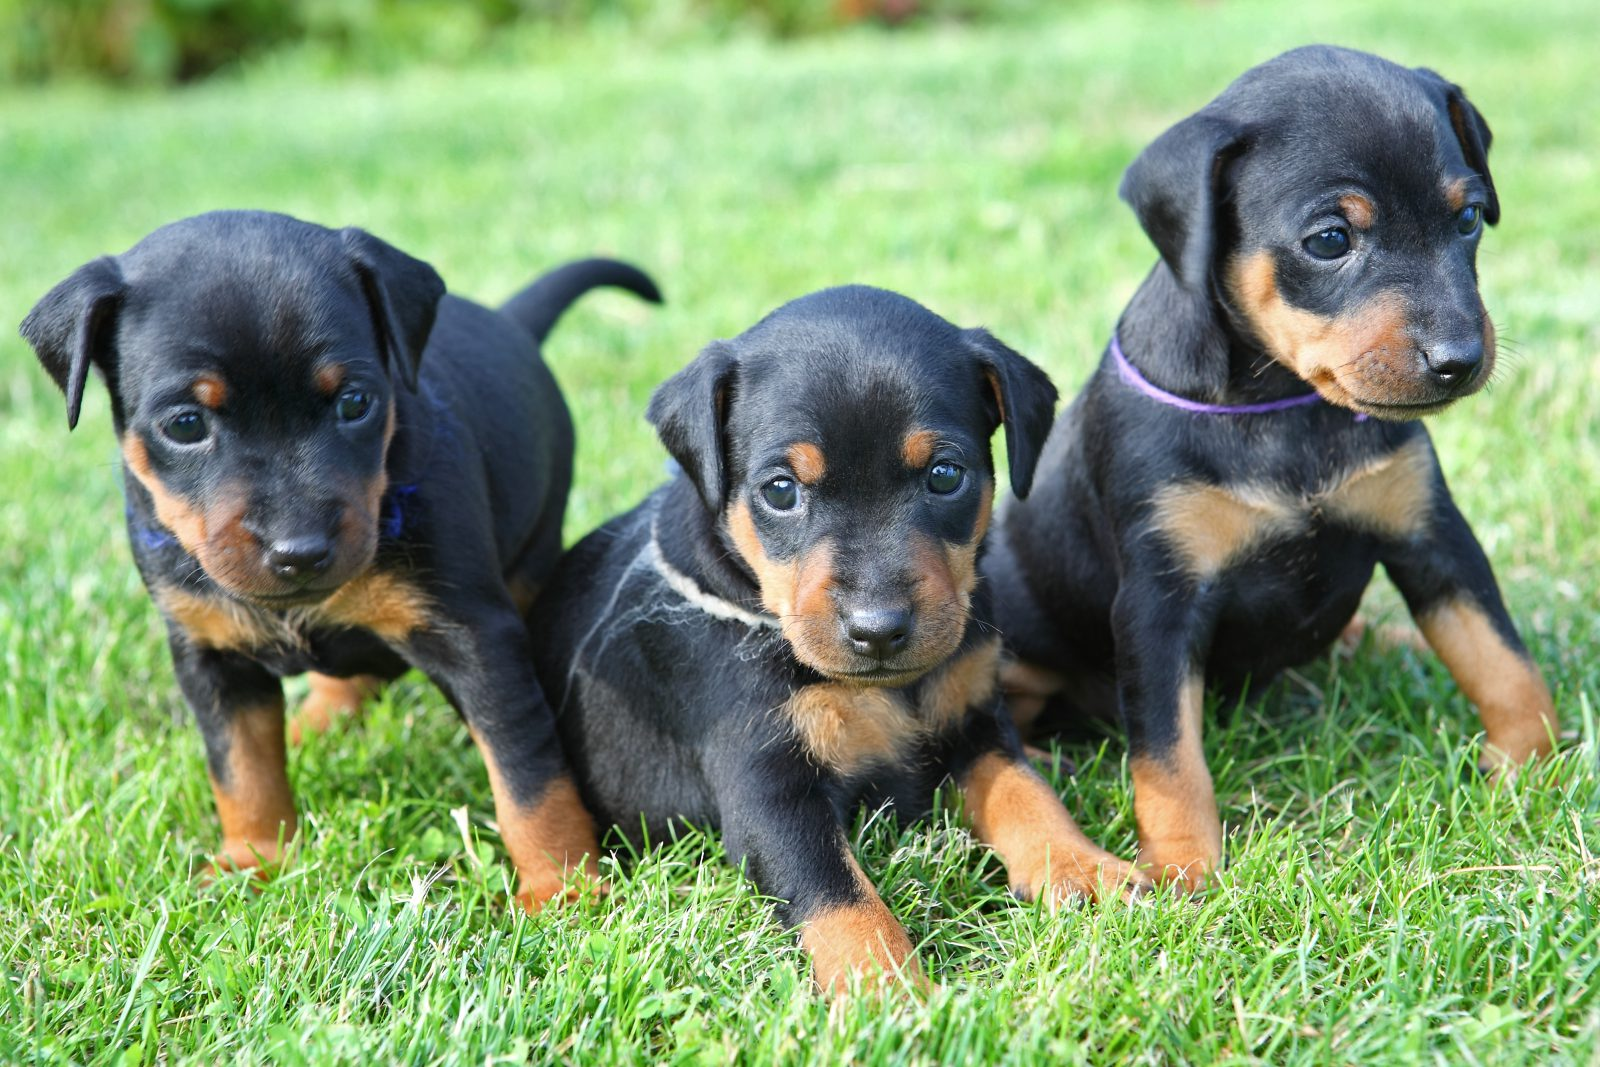 cao-pinscher-alemao-descricao